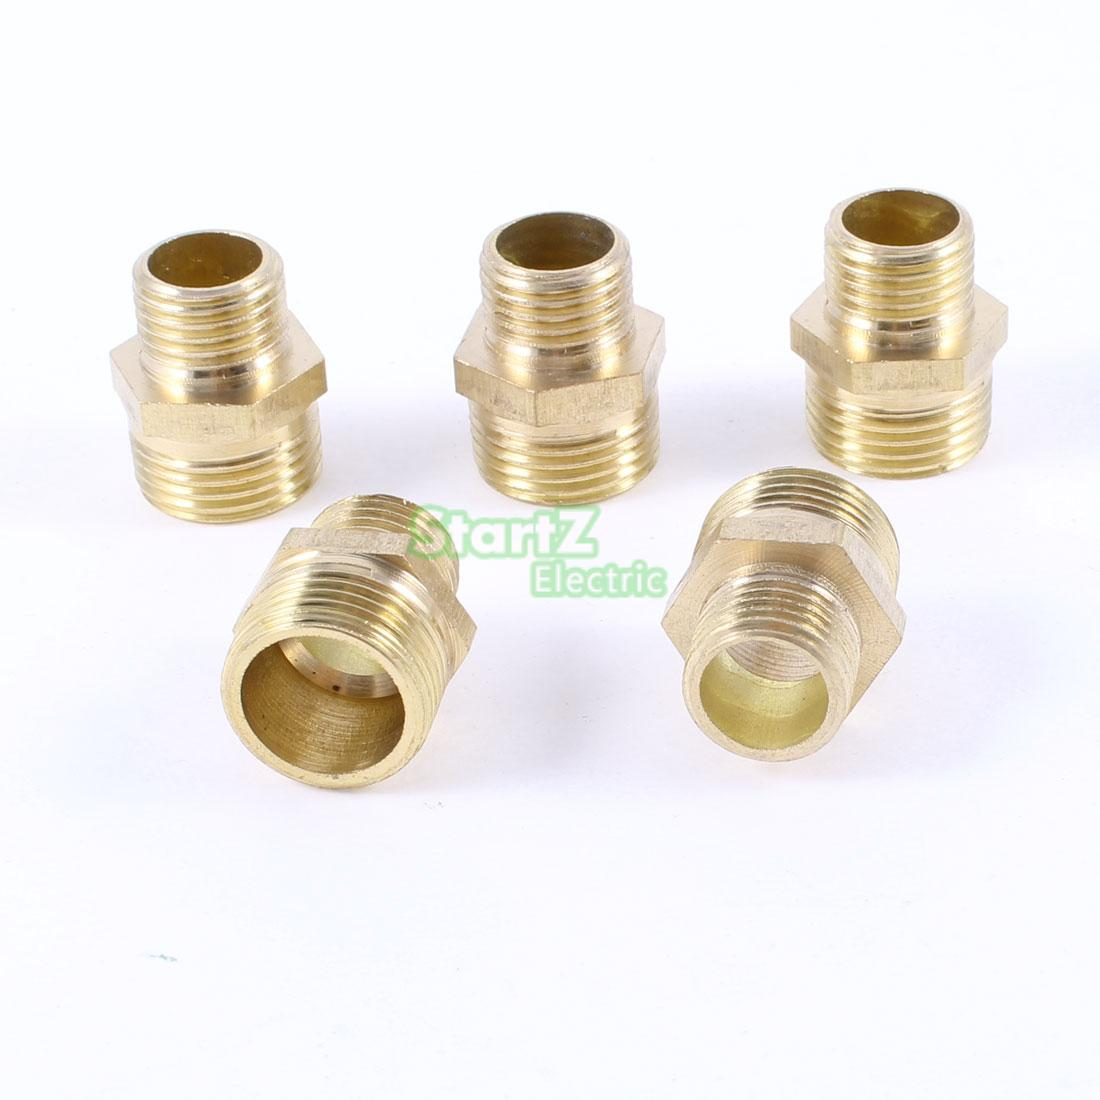 "Male To Male Thread 1/4""PT X 1/2""PT Brass Hex Nipple Quick Fittings 5 Pcs"